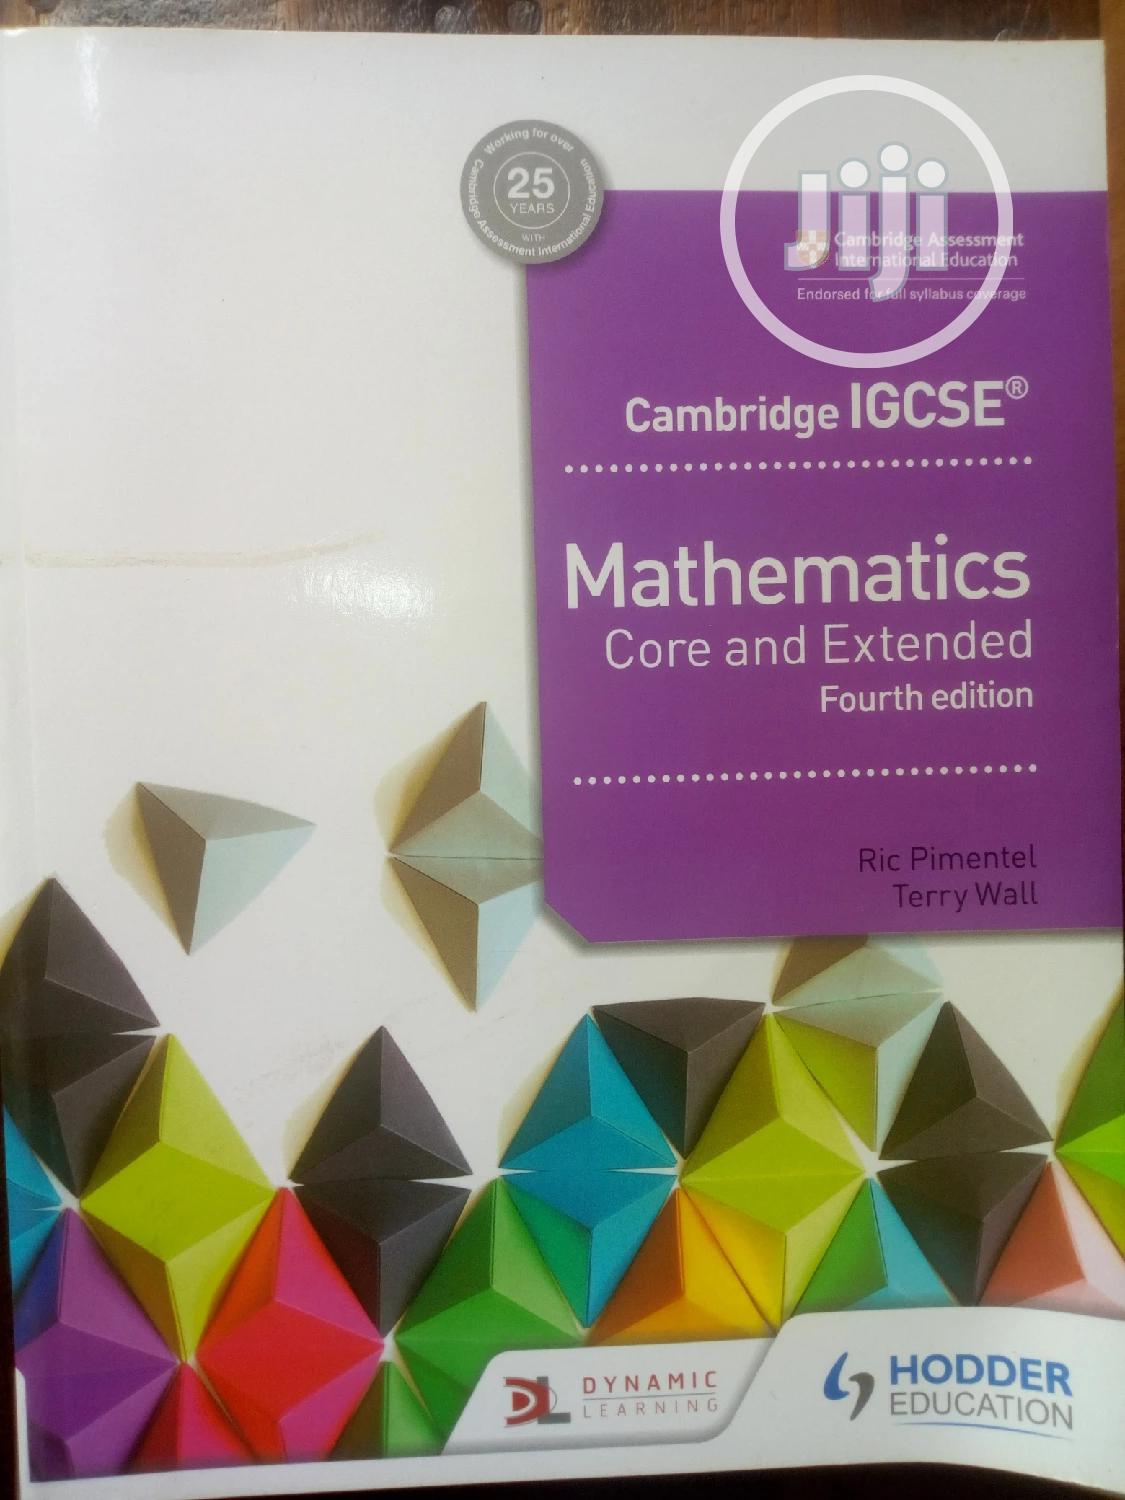 Archive: Cambridge IGSCE Mathematics Core and Extended